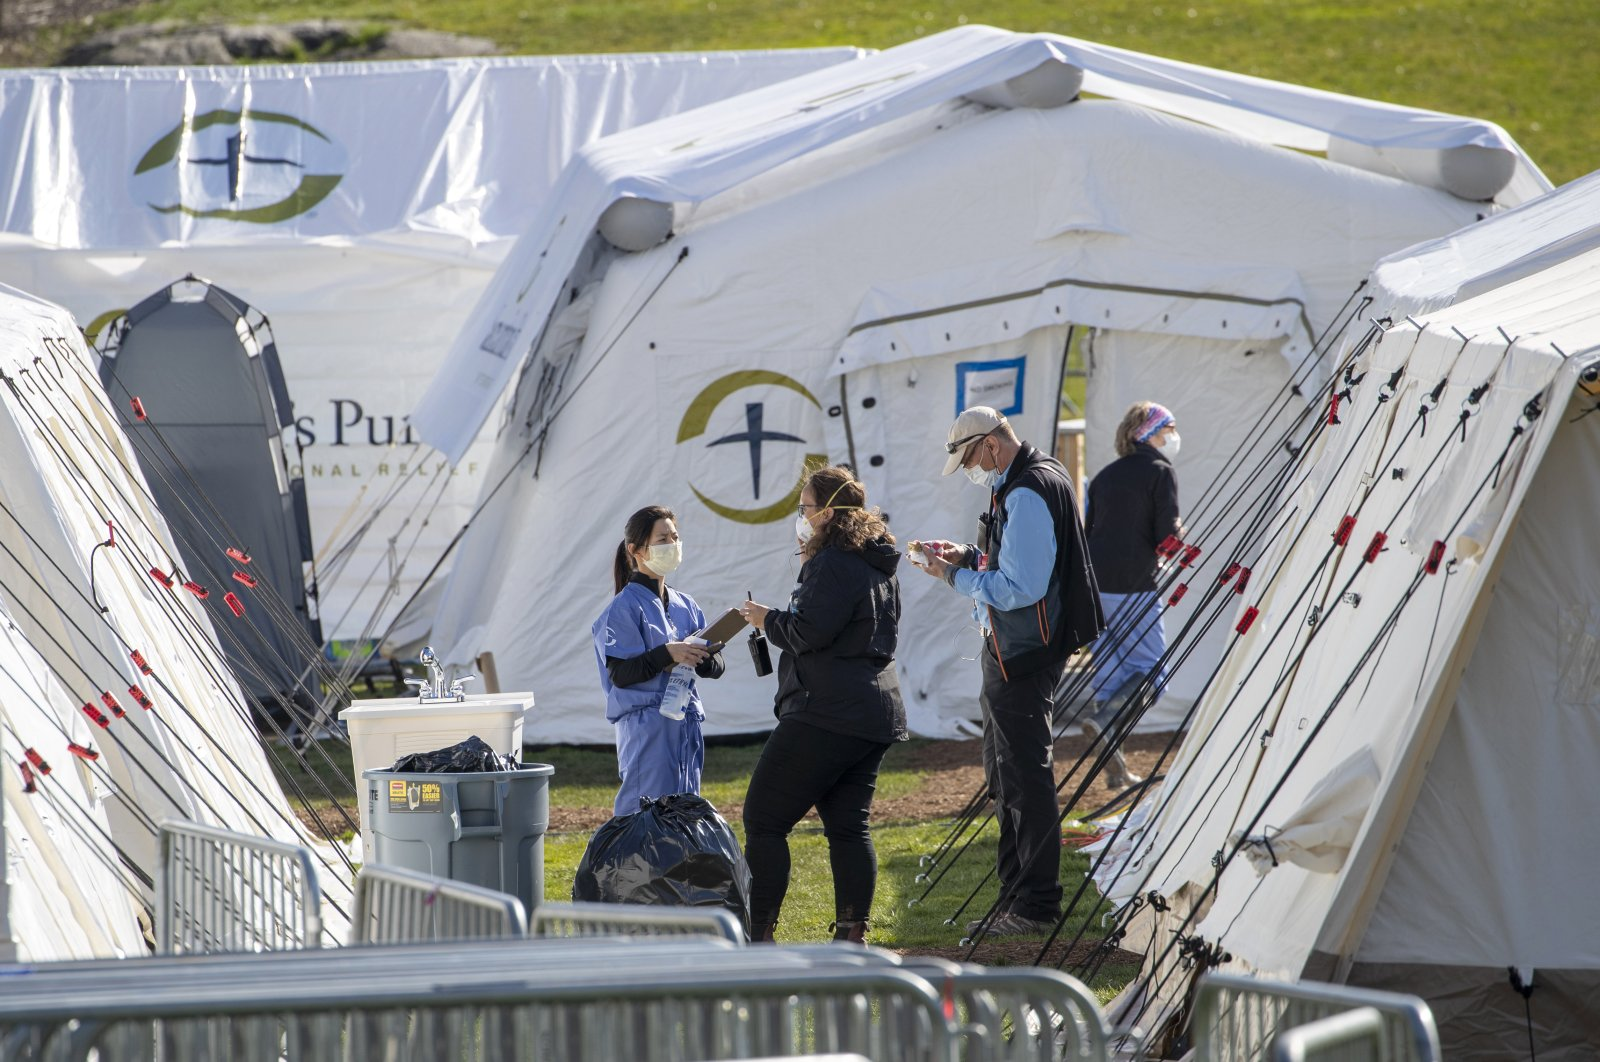 Medical personnel work at the Samaritan's Purse field hospital in New York City's Central Park, Wednesday, April 1, 2020. (AP Photo)